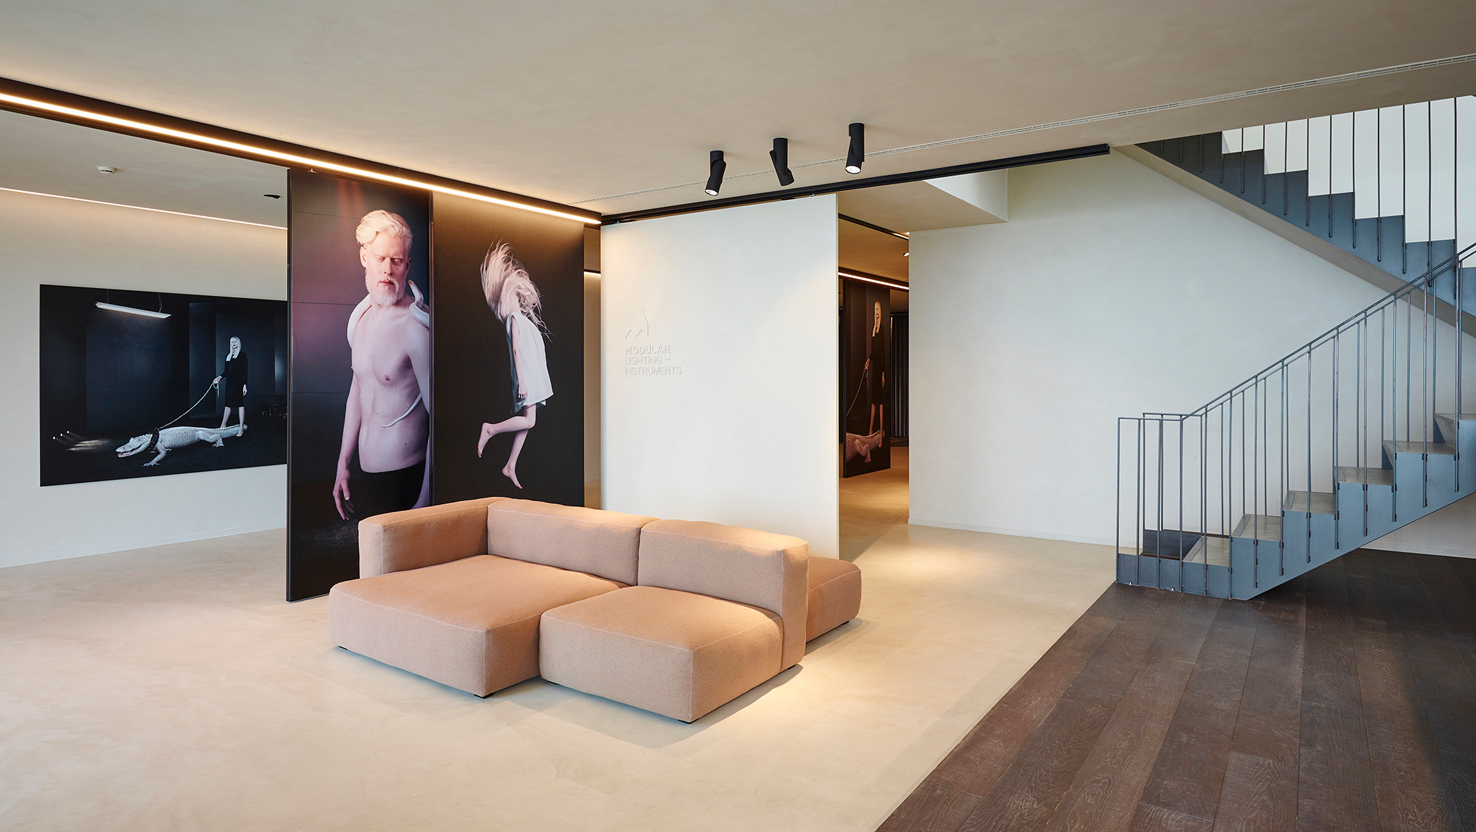 modular lighting instruments a lounge with sophisticated. Black Bedroom Furniture Sets. Home Design Ideas